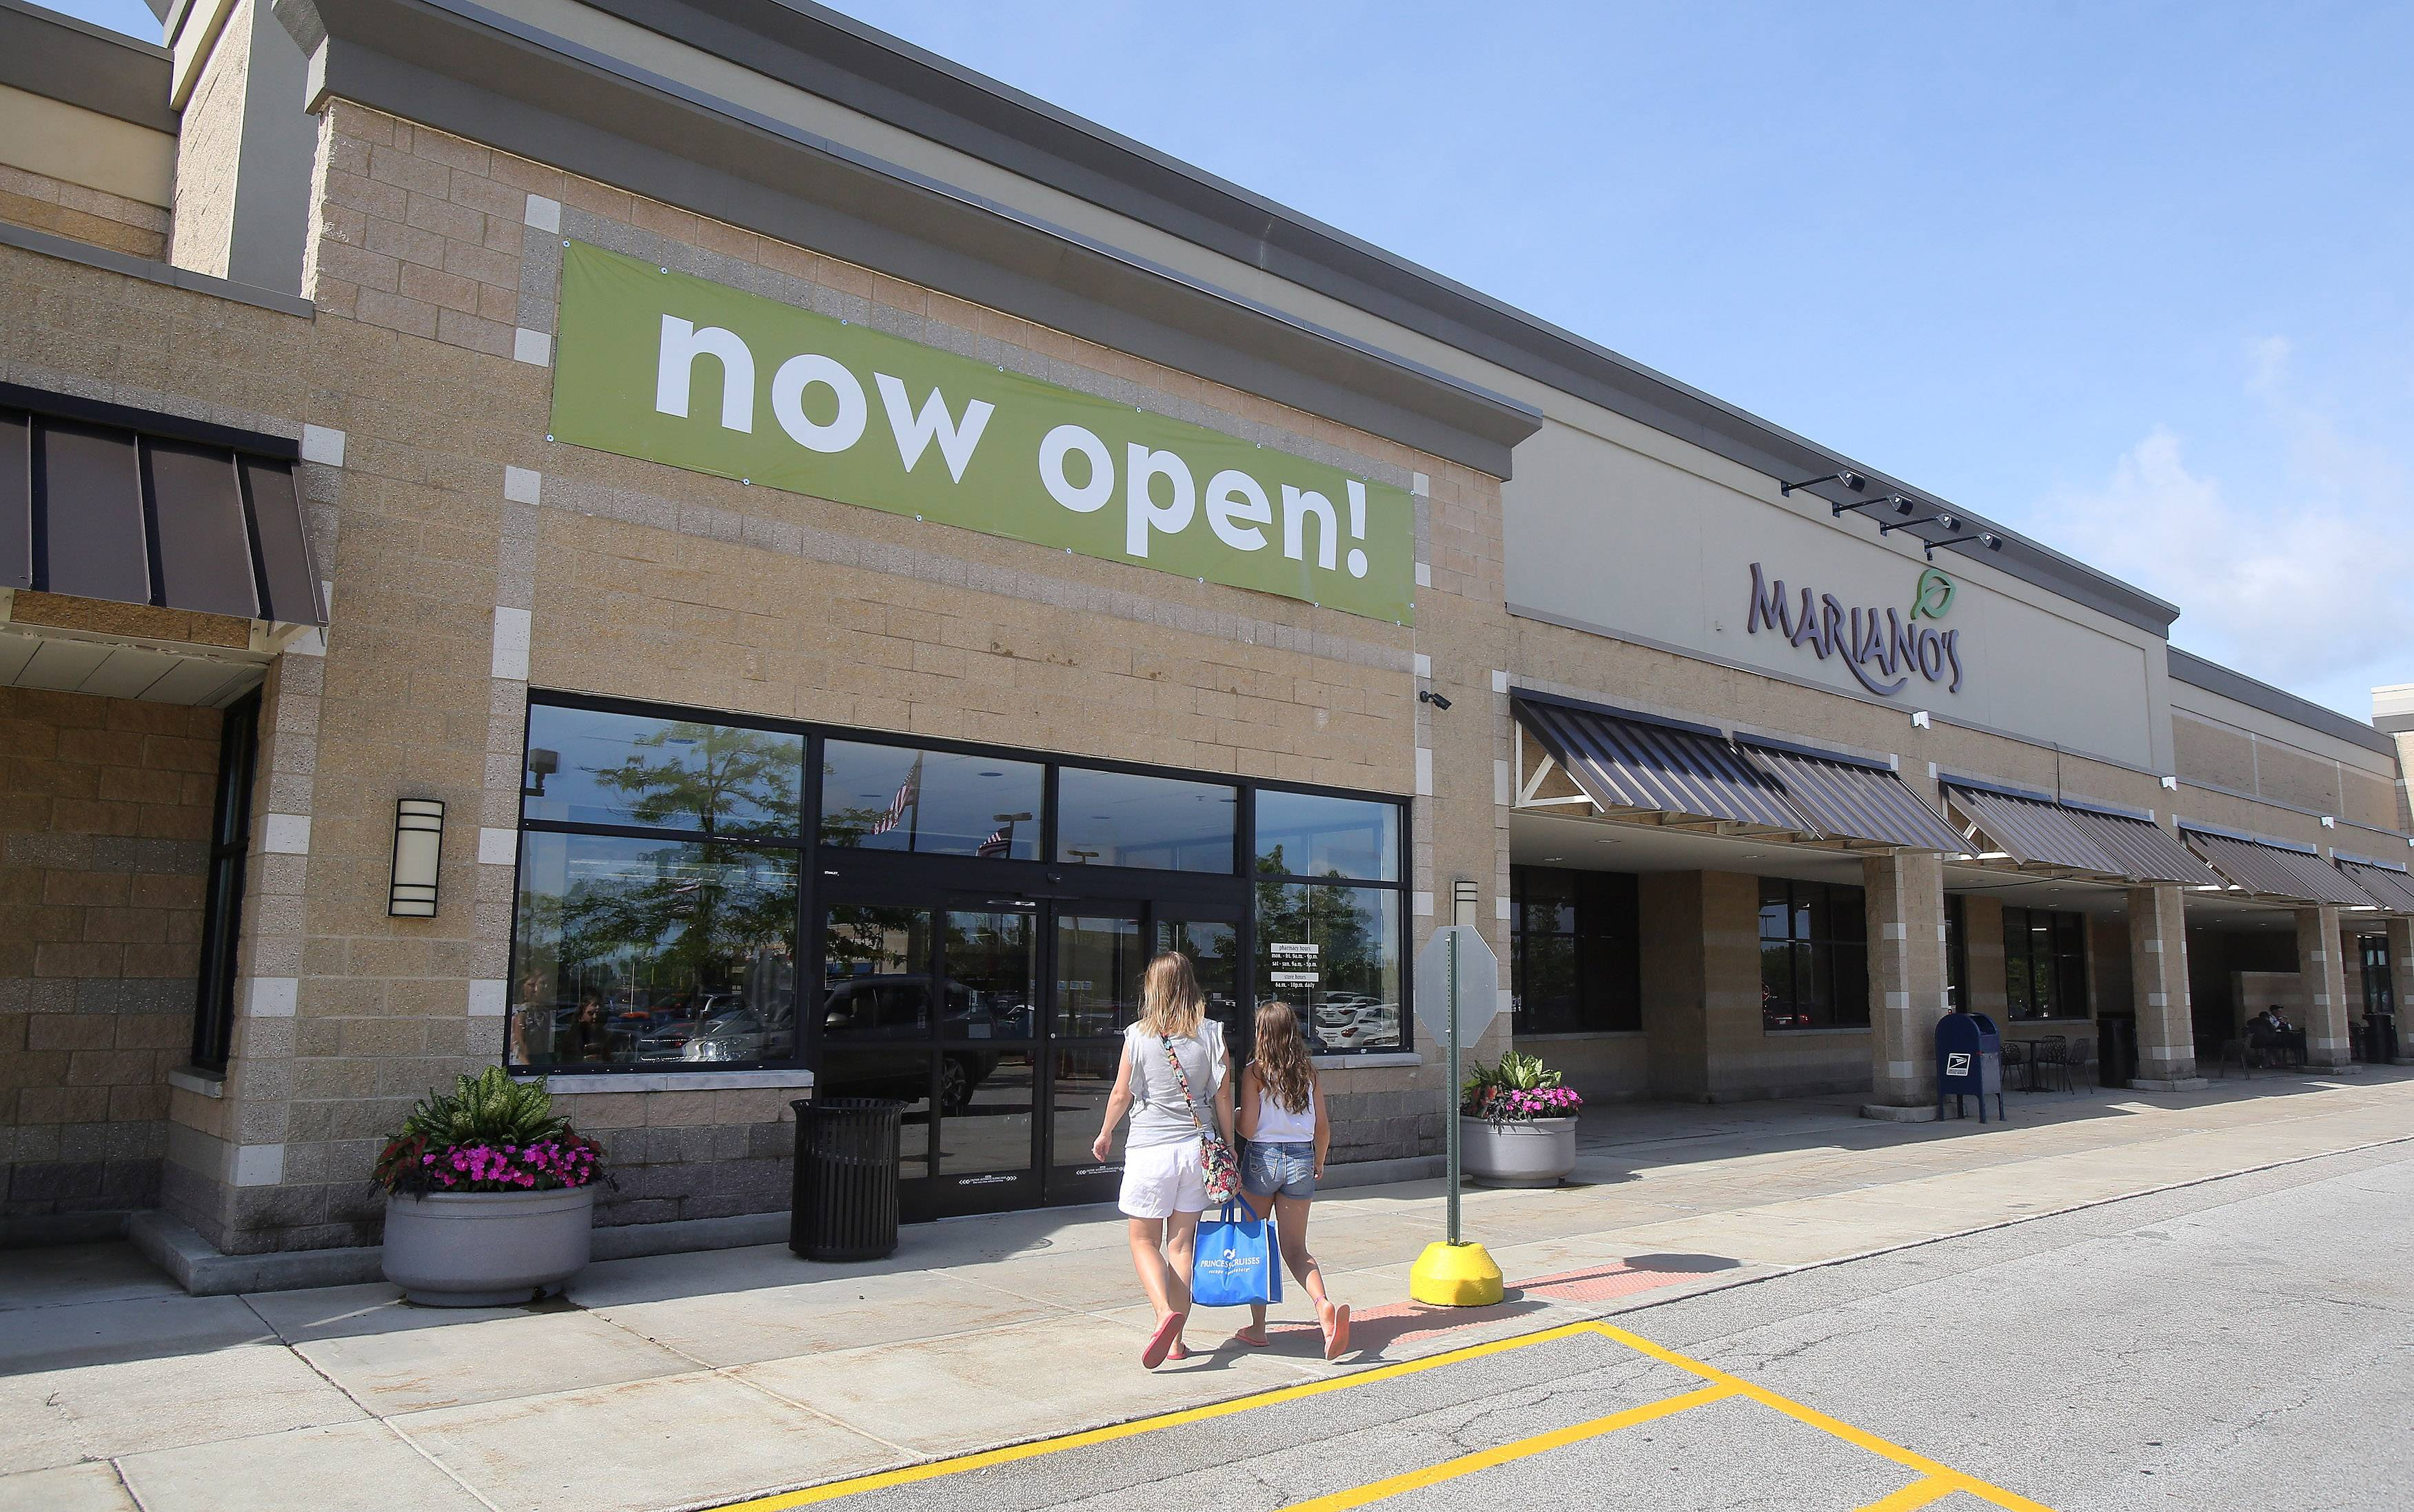 Customers arrive for Tuesday's grand opening of Mariano's grocery store in Gurnee. Mariano's is owned by Roundy's Inc., a leading grocer in the Midwest, and has taken over the site once occupied by Dominick's.